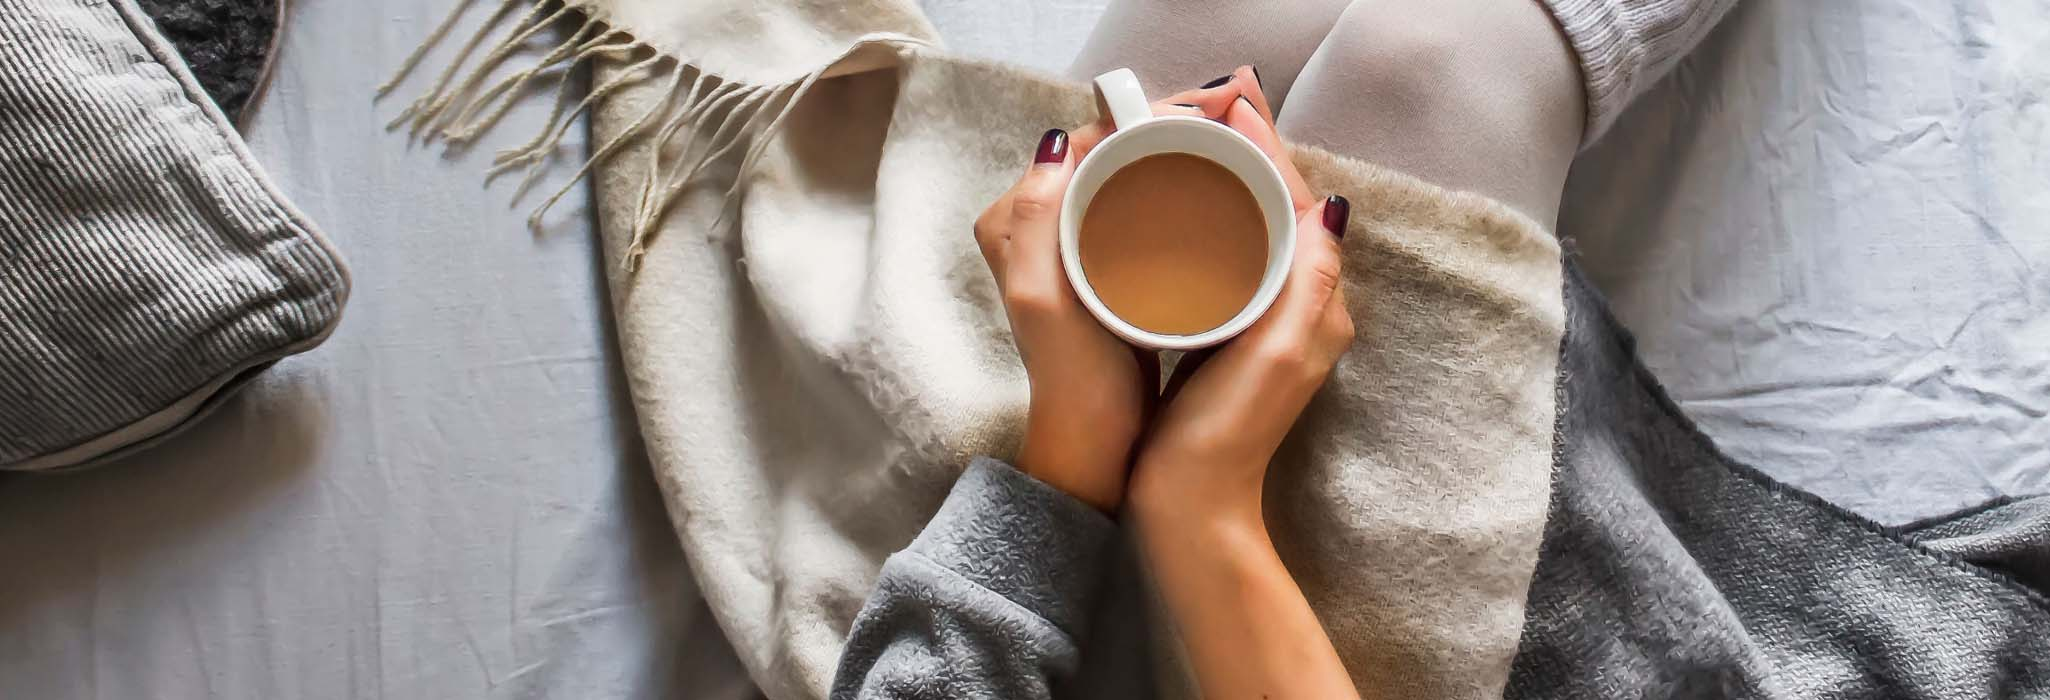 girl-with-warm-drink